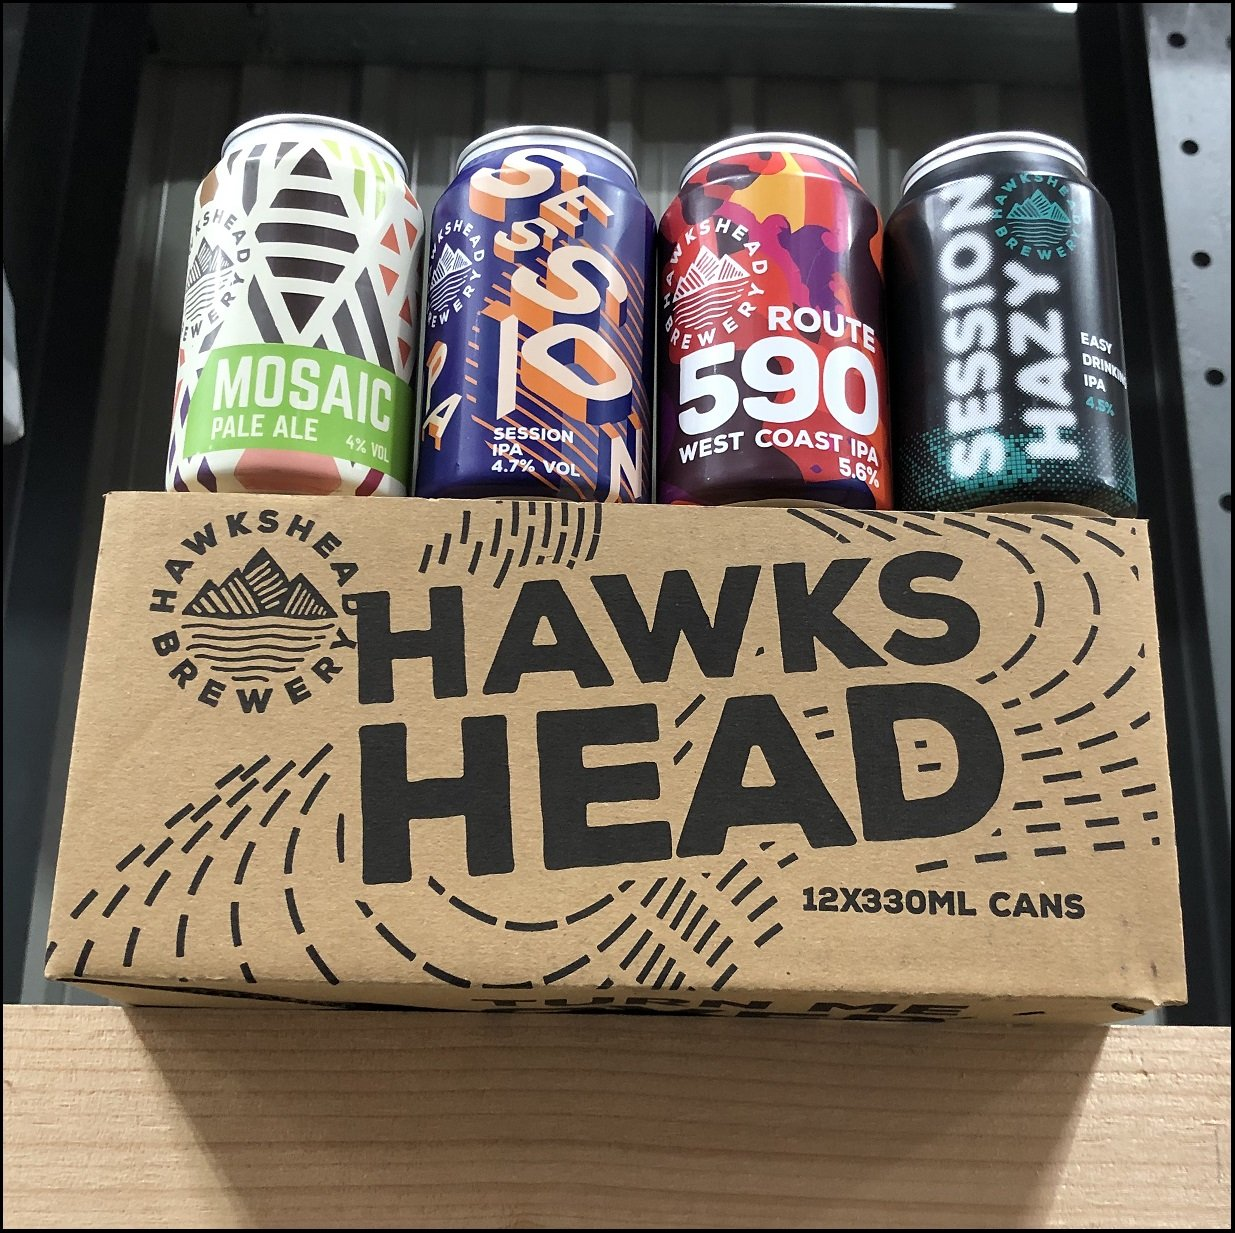 Hawkshead Brewery - Mixed Case can 330ml